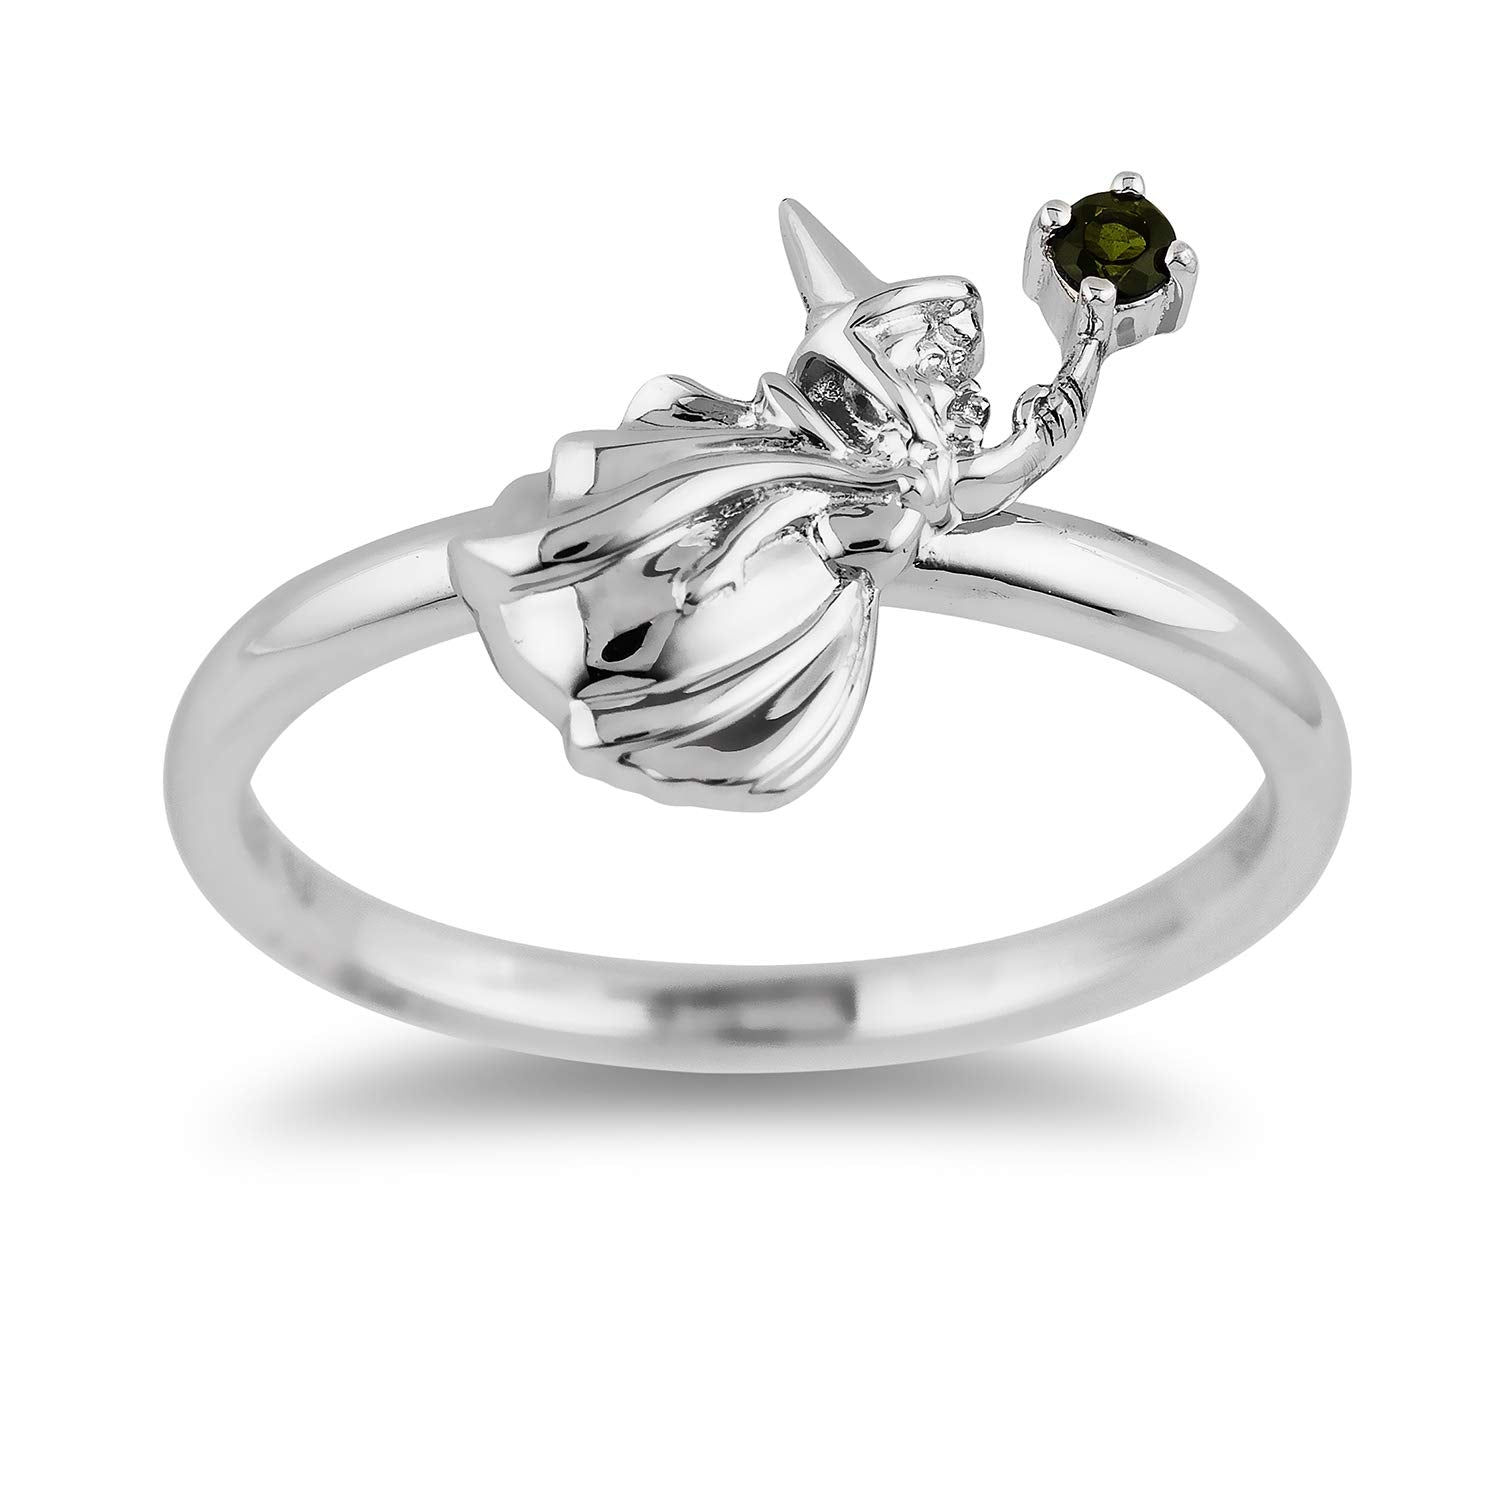 enchanted_disney-aurora_fauna_fairy_ring-sterling_silver_1